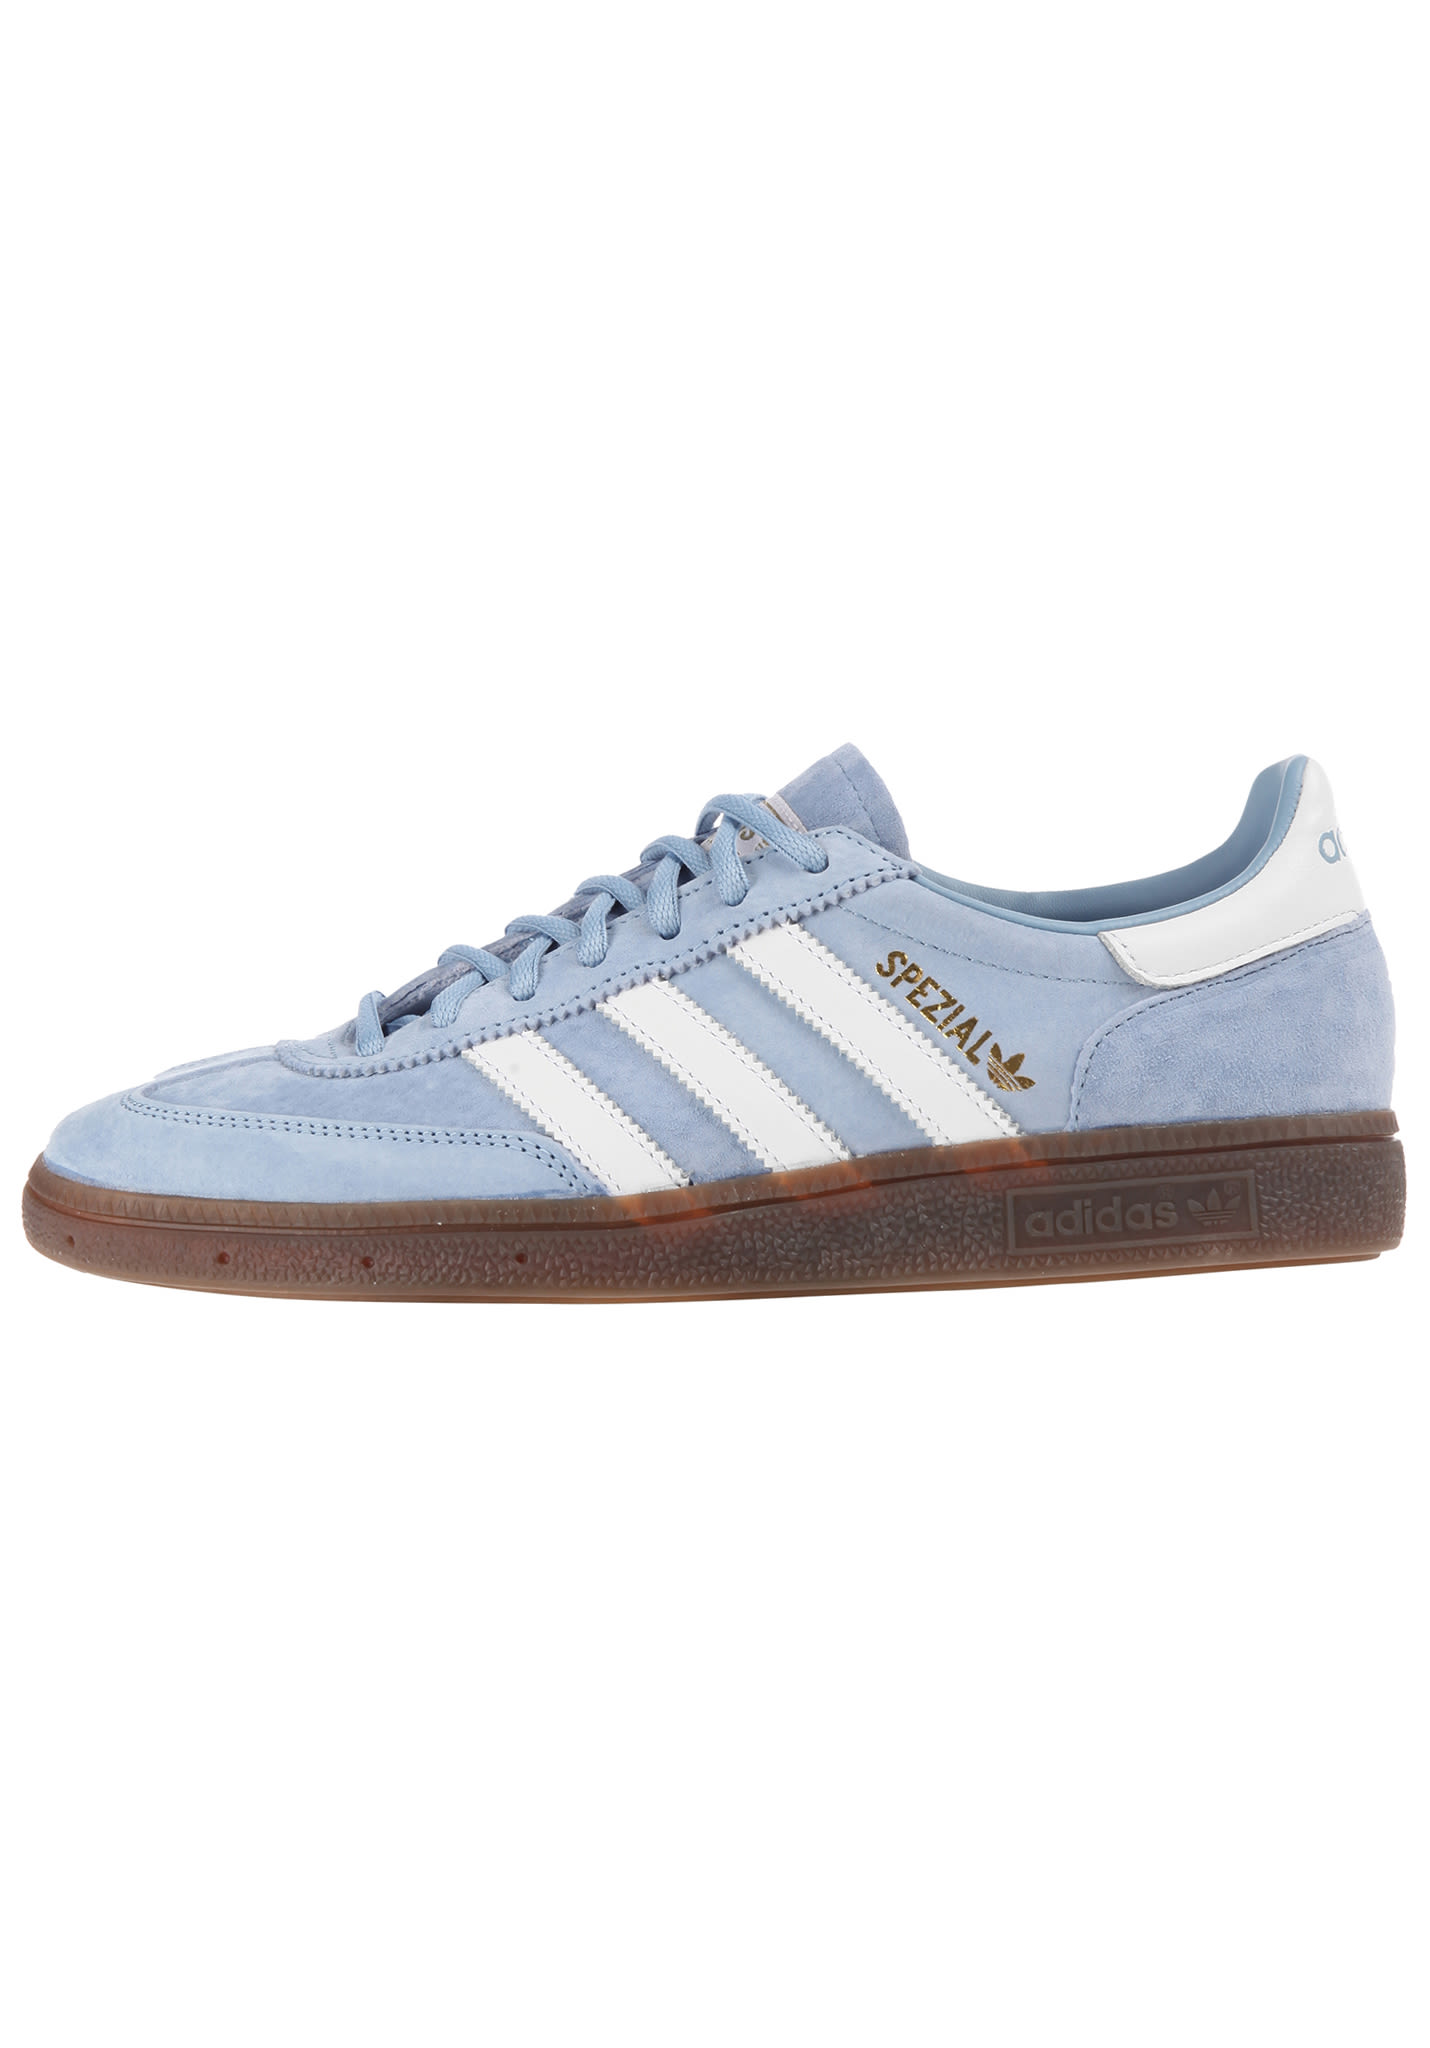 Originals Spezial Sneakers Men For Adidas Planet Handball Blue KcF1Jl